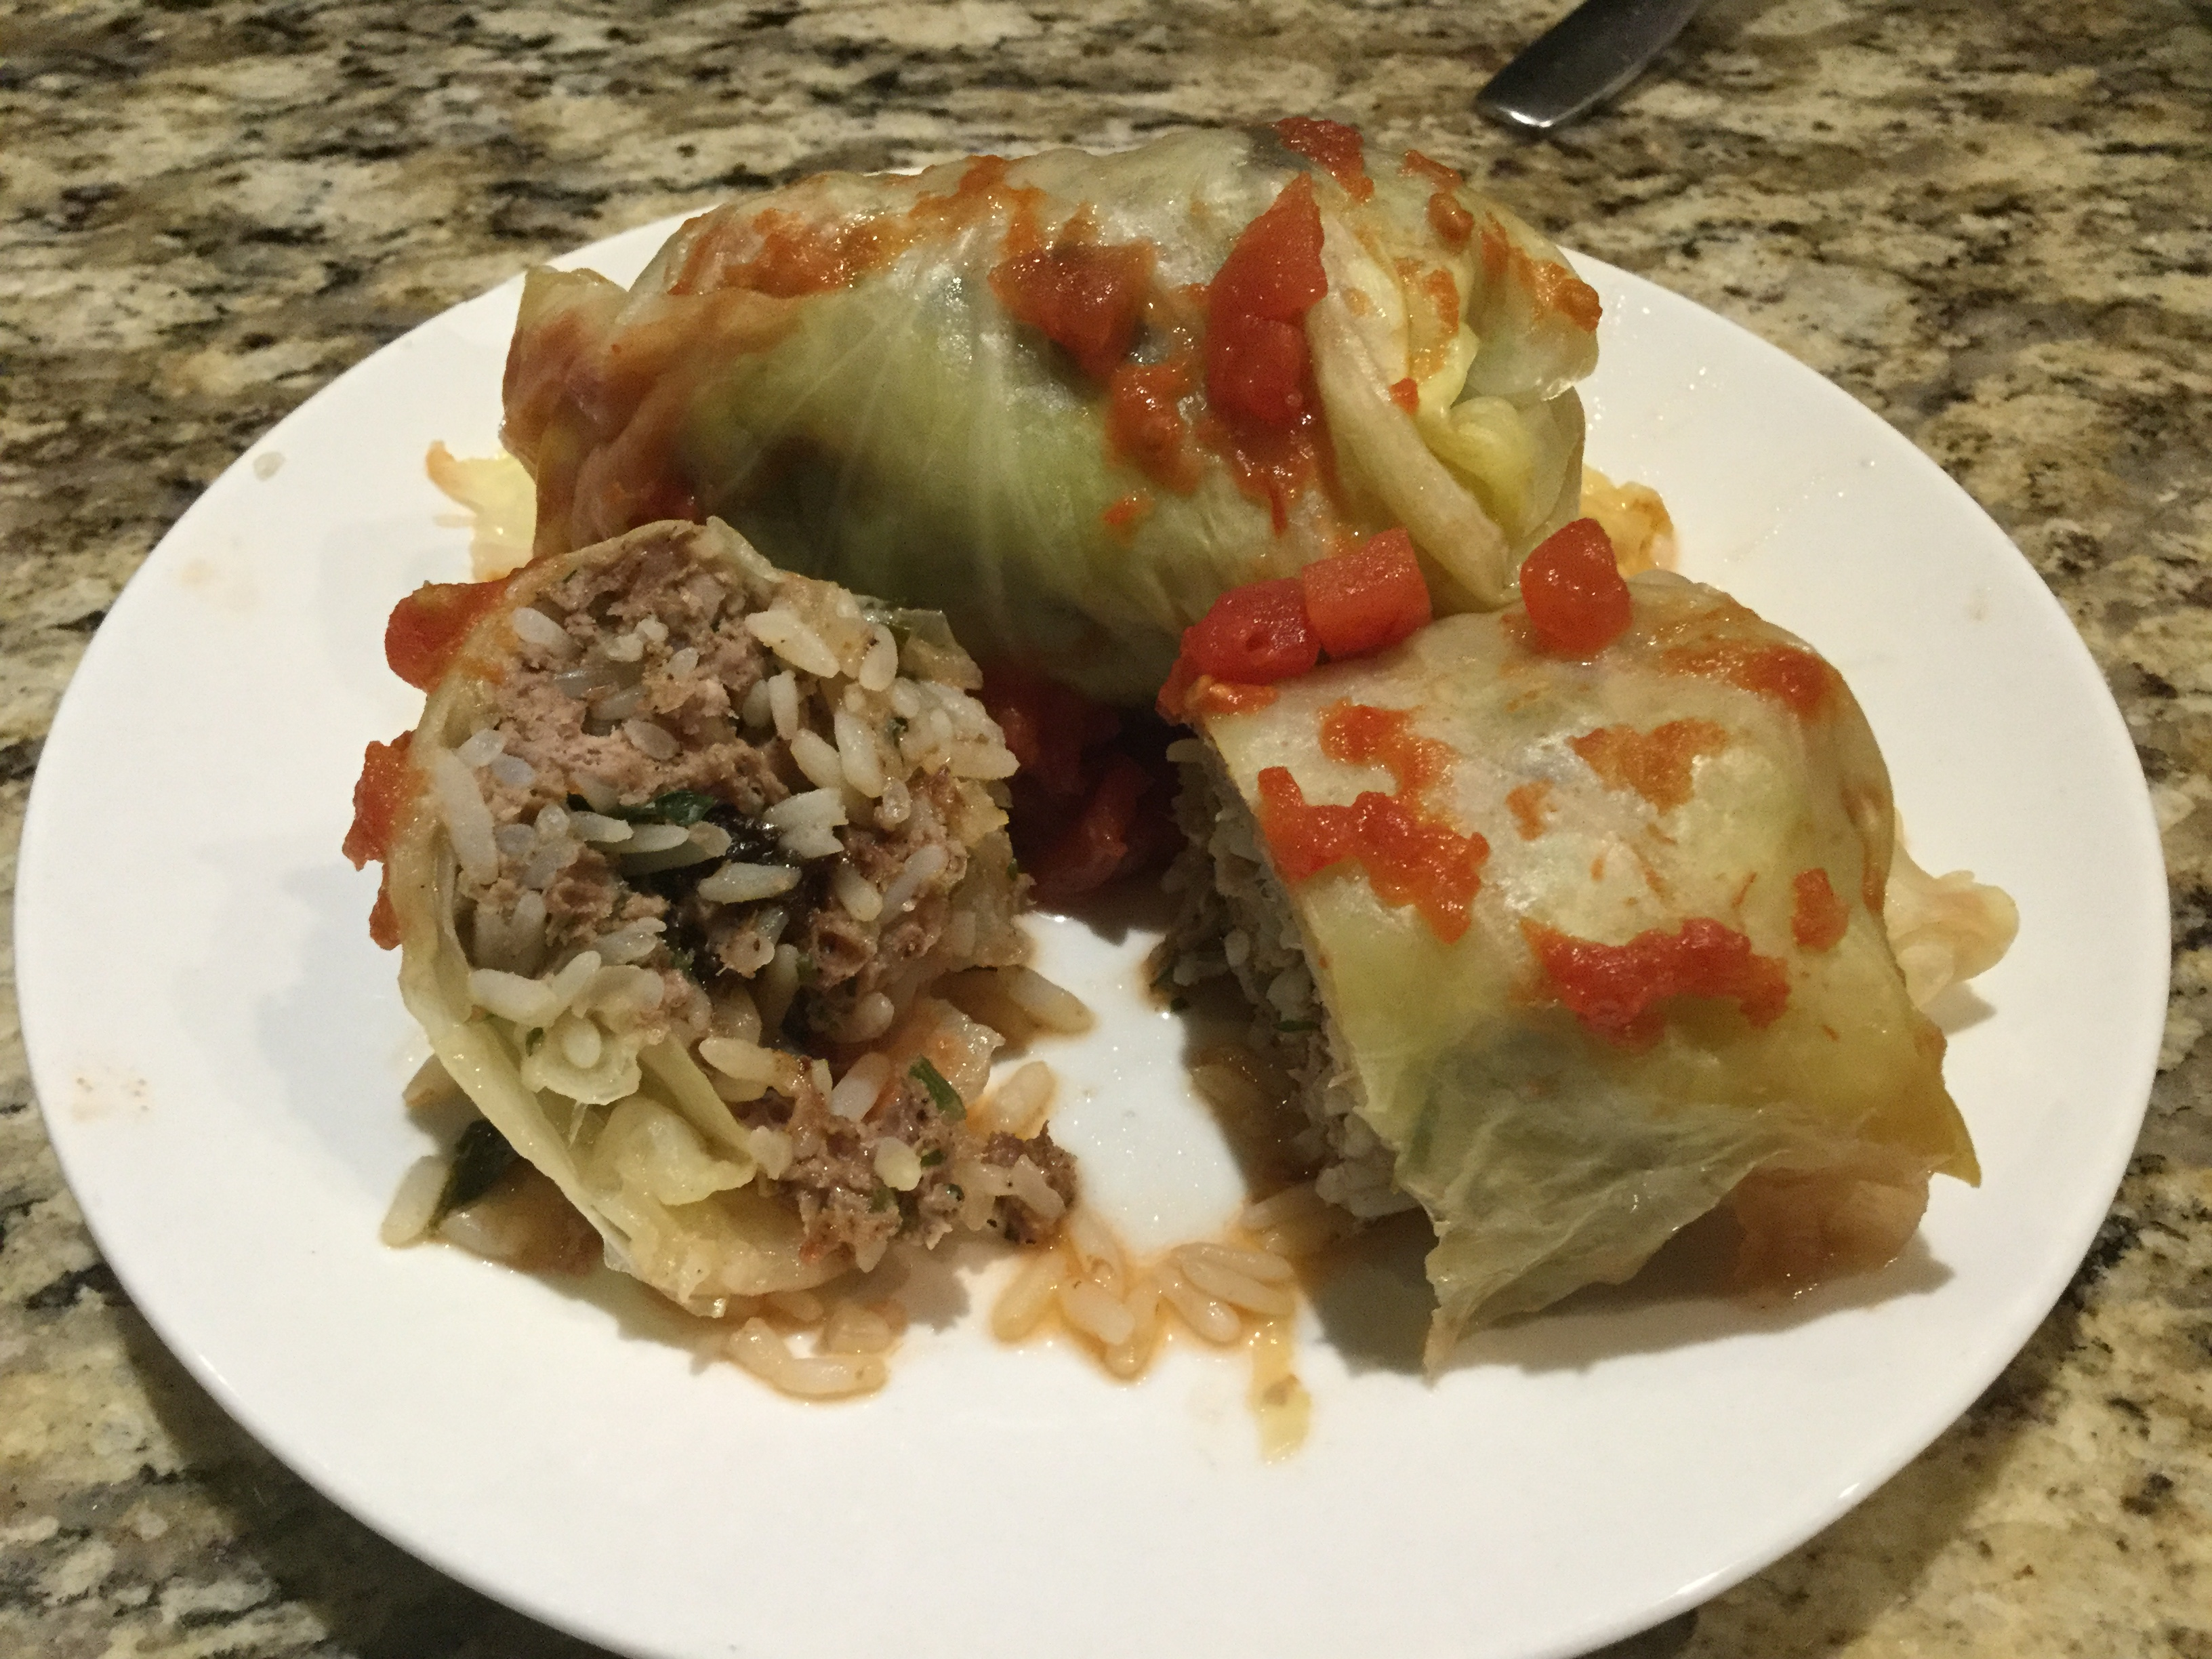 Lamb and Rice Stuffed Cabbage Rolls sonia